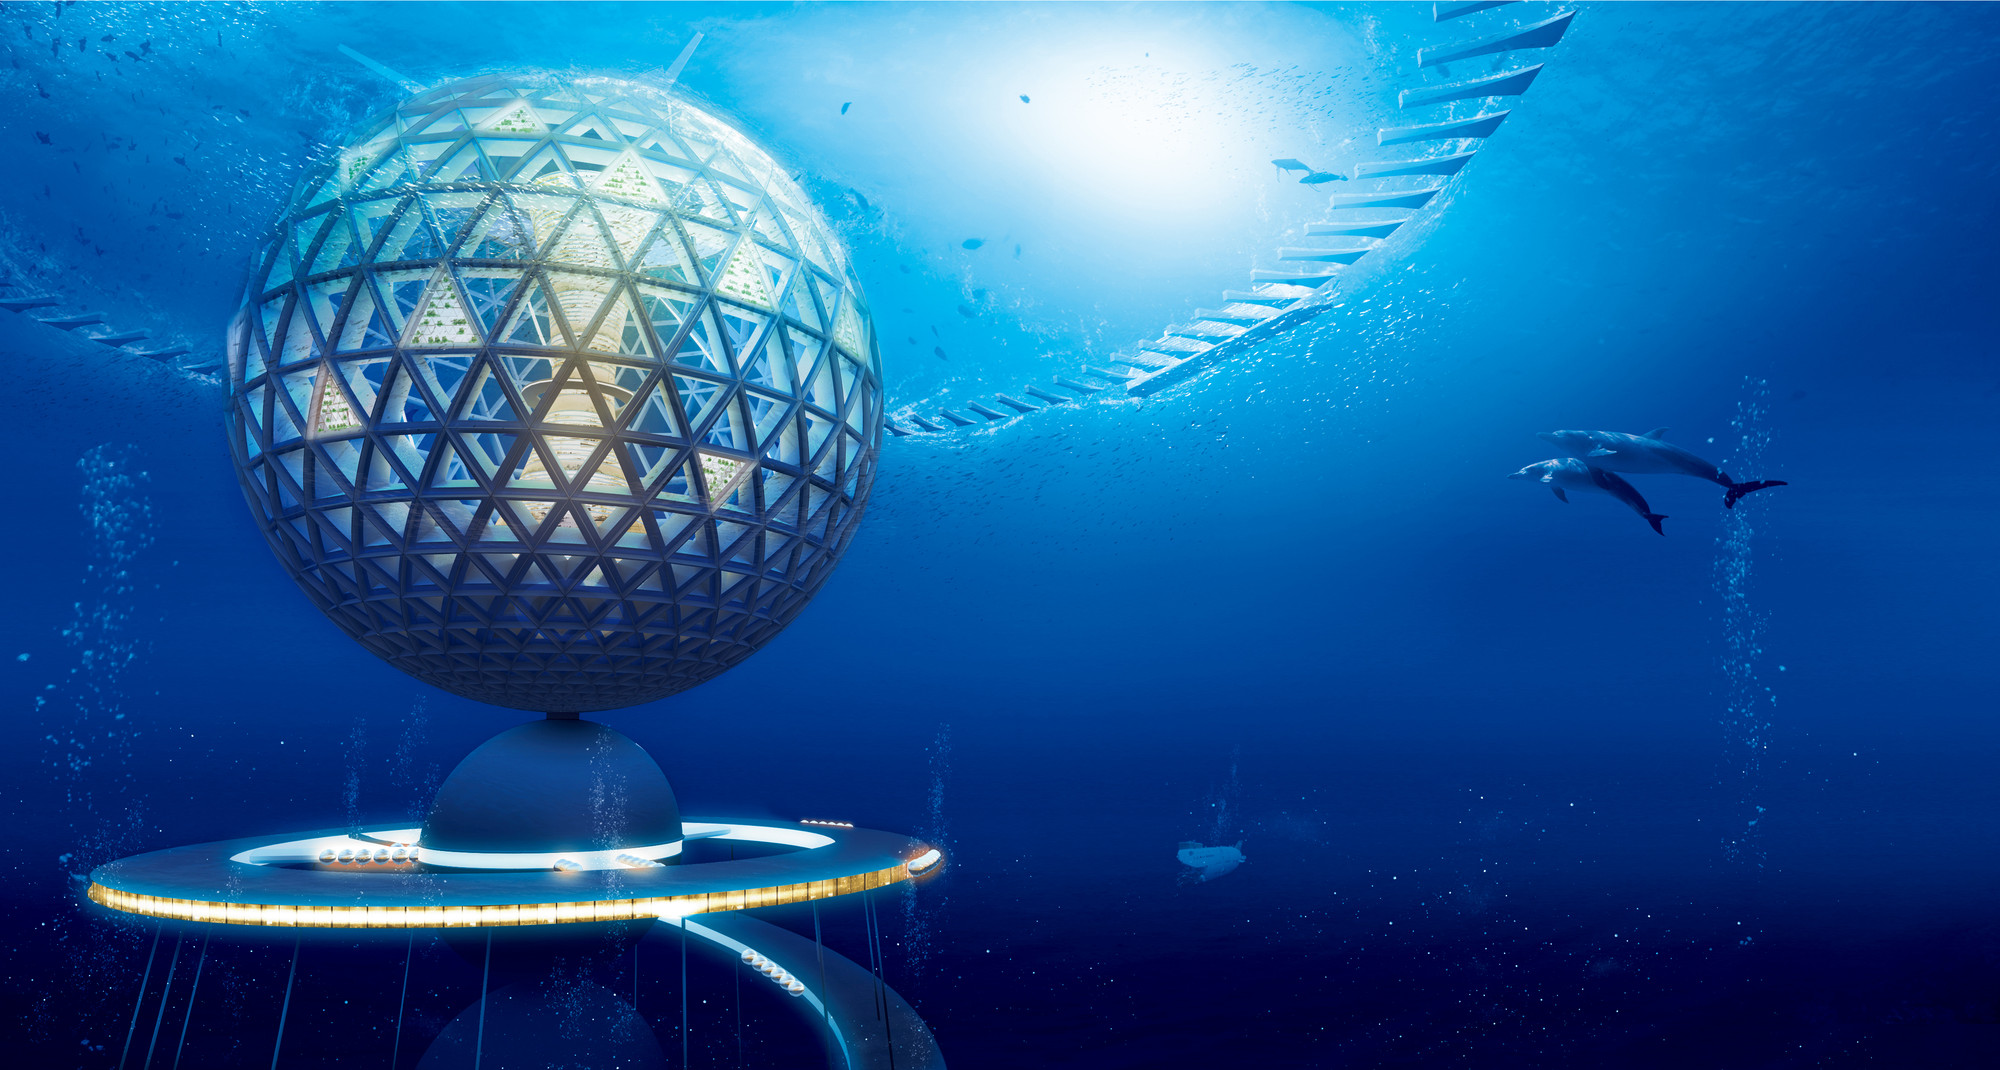 Will Shimizu Corporation's Futuristic Deep-Sea City Concept Sink or Swim?, Courtesy of Shimizu Corporation